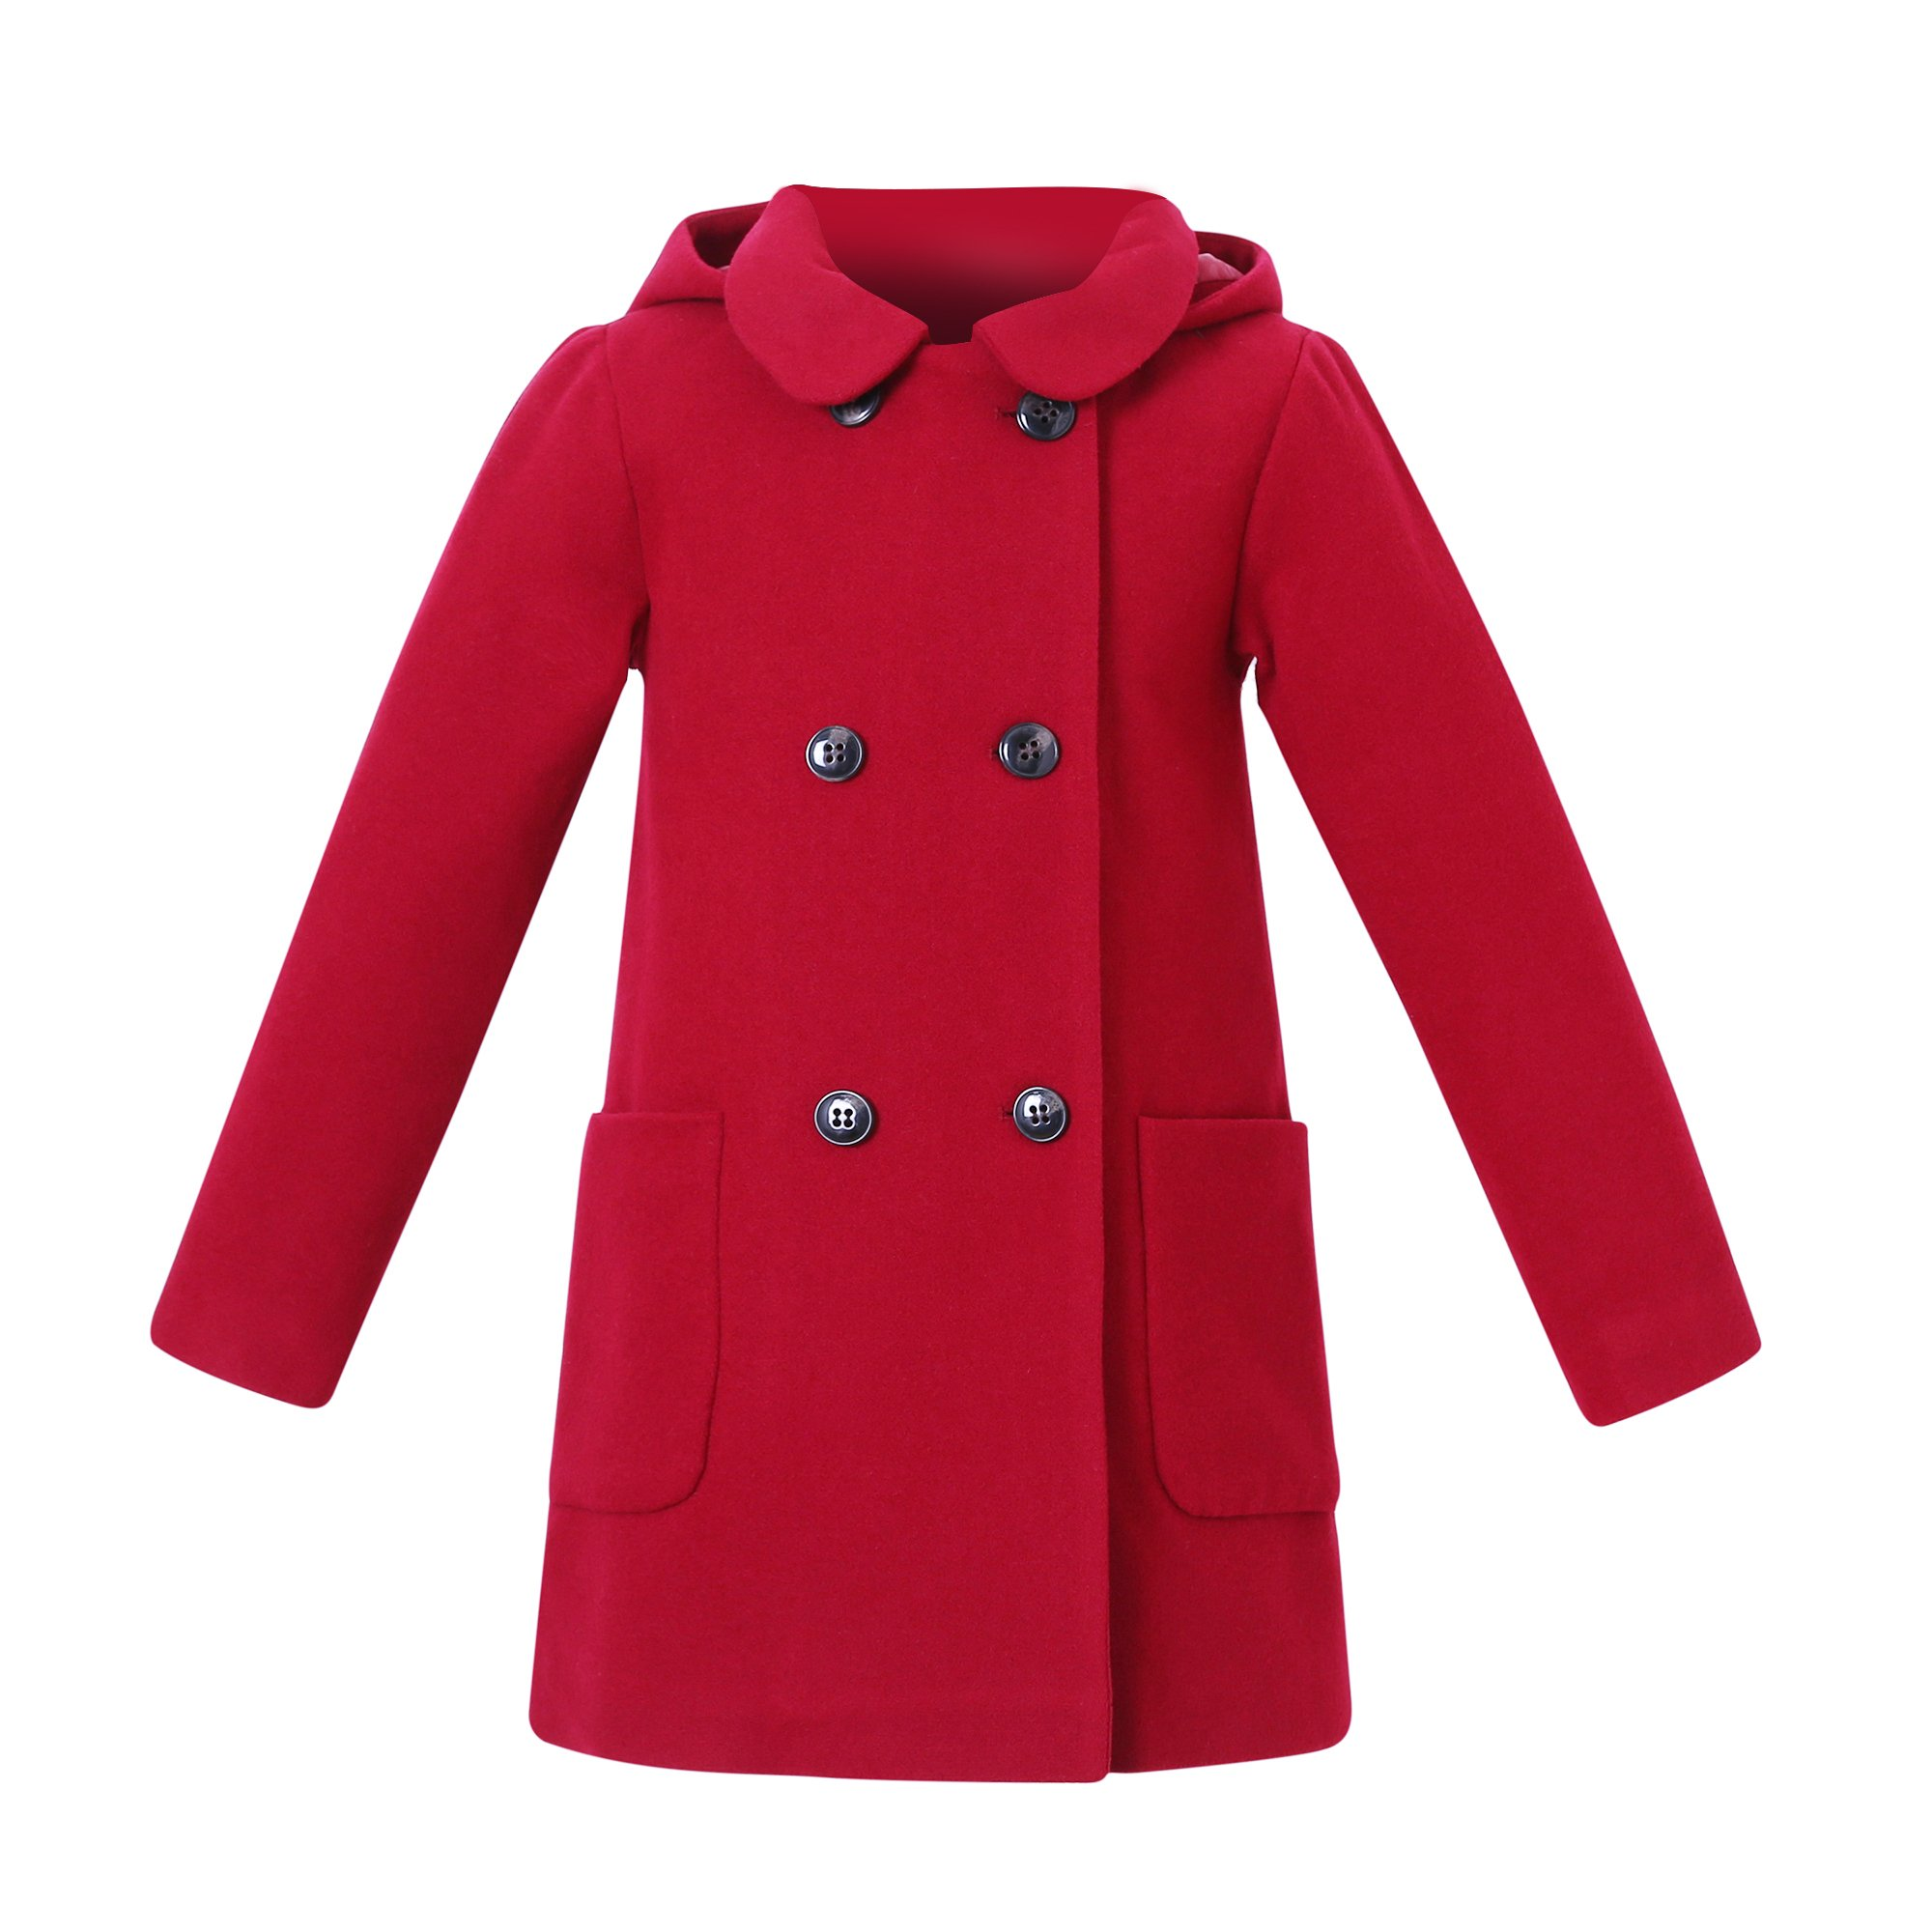 Richie House Big Girls' Wool Double-Breasted Jacket RH2517-A-8 Cherry